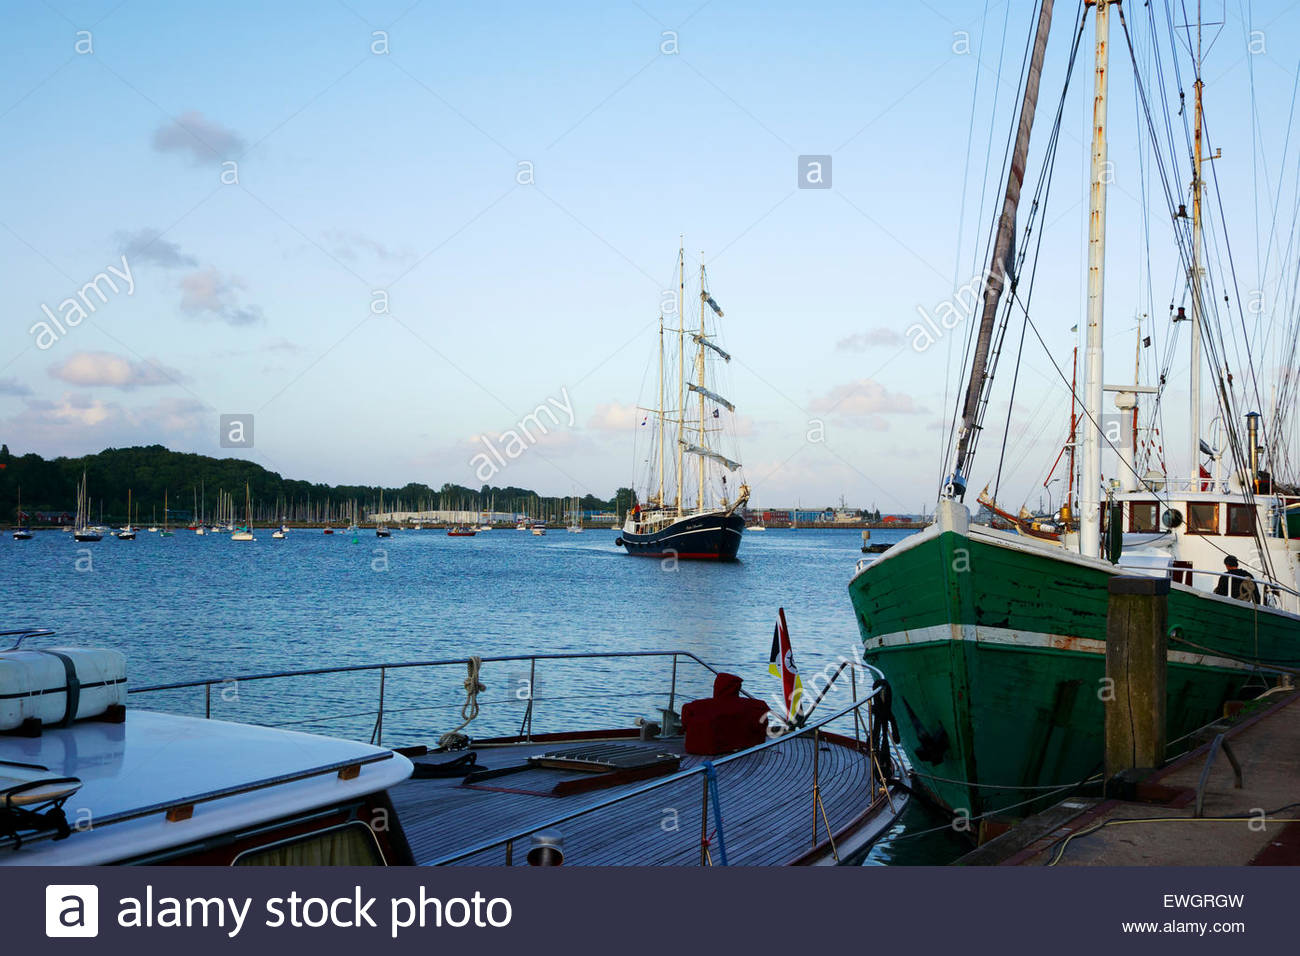 Tall ships and other yachts in the harbor of Eckernförde, a city located at the eastern end of the Danevirke - Stock Image